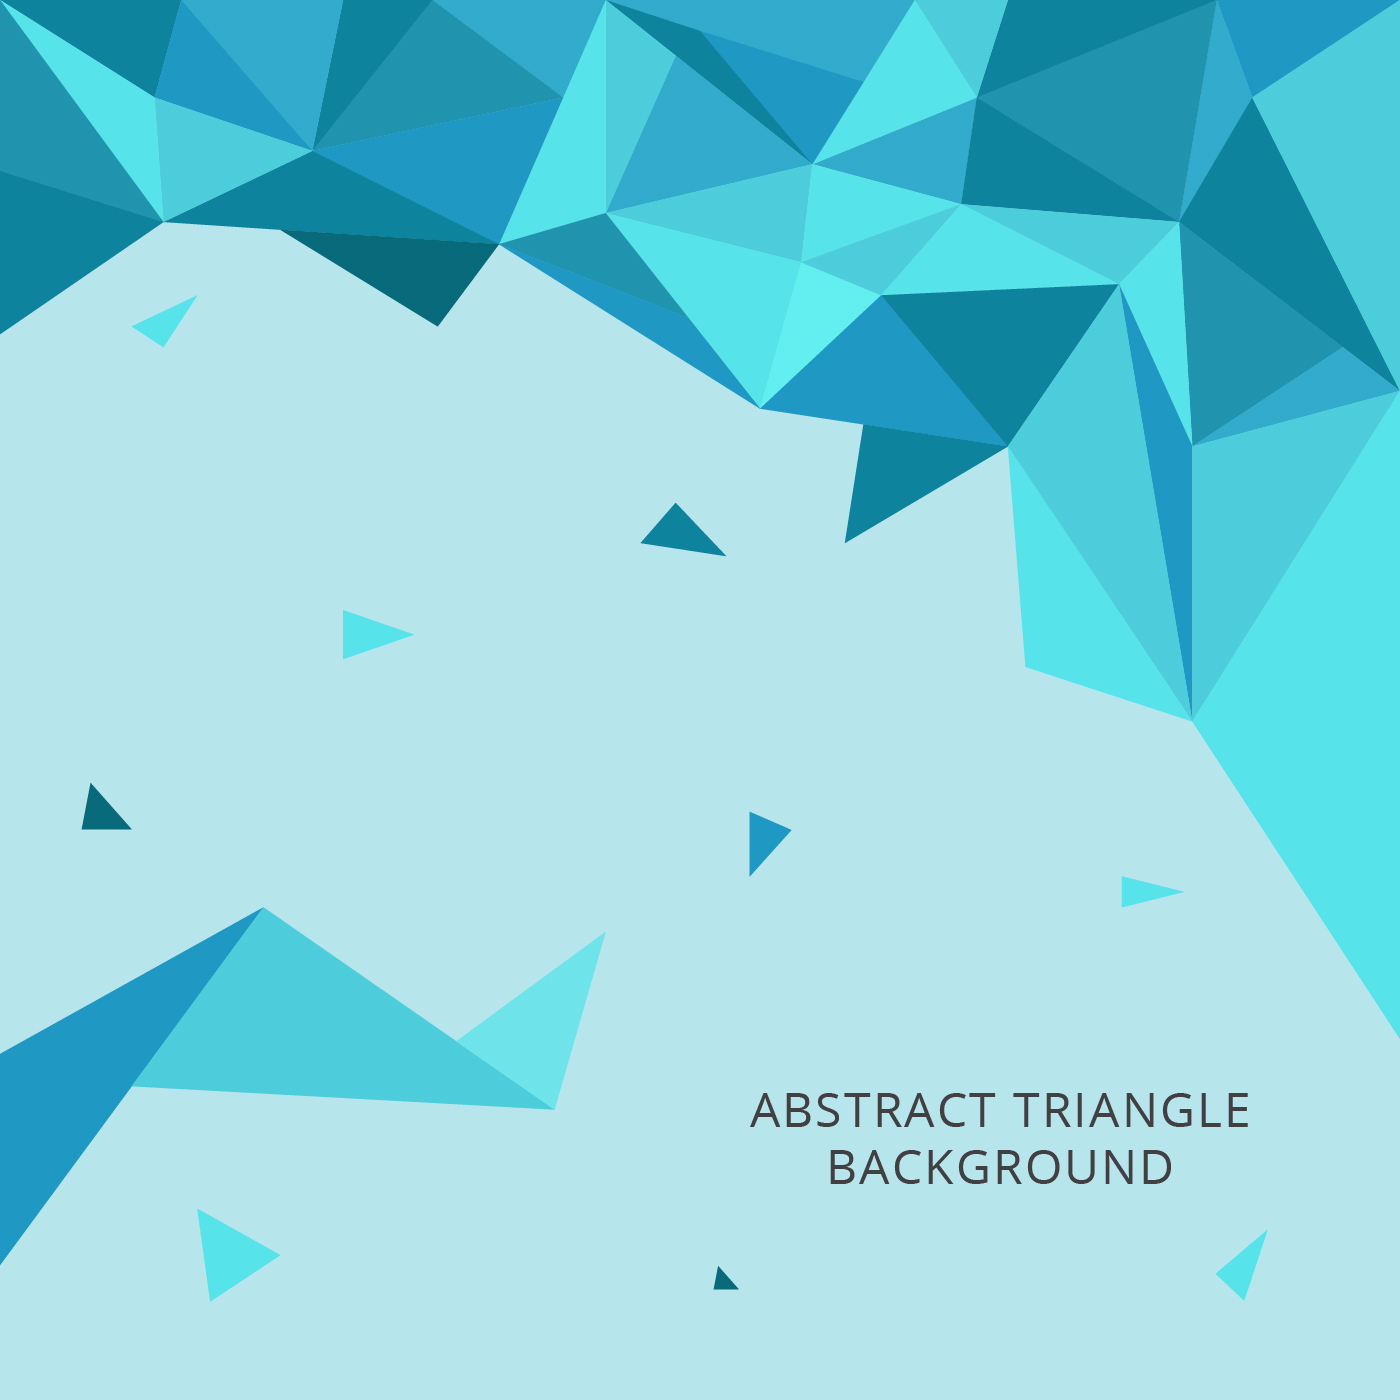 Abstract Triangles Vector Background - Download Free ...